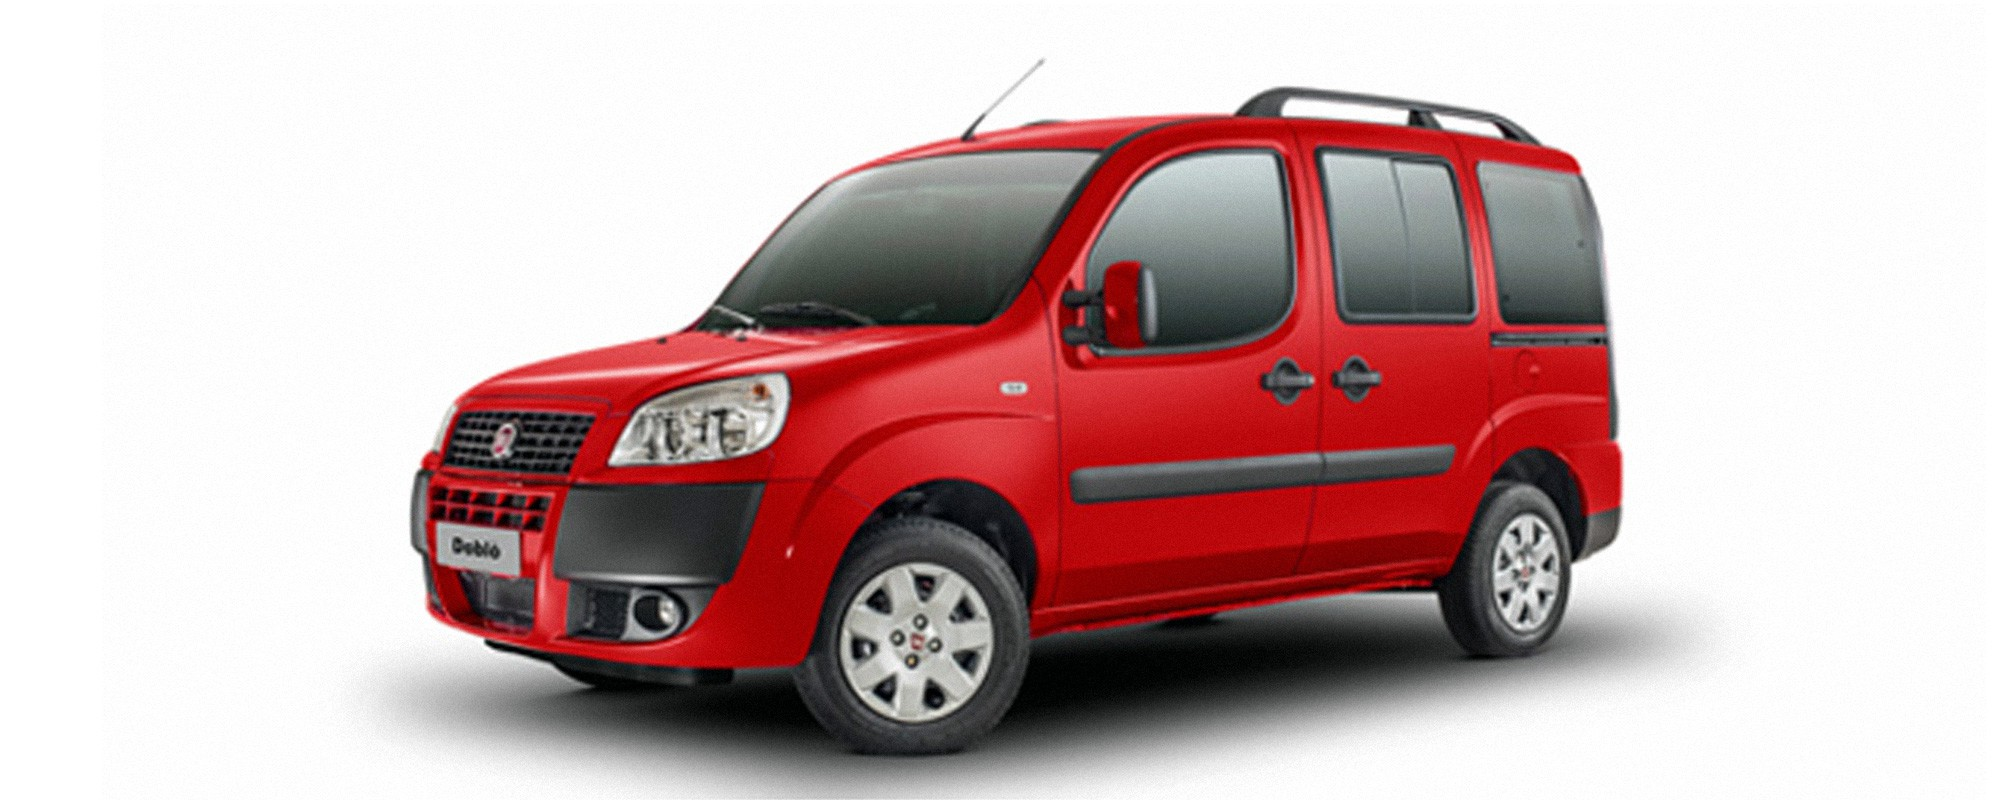 fiat doblo mpv spied in pune any plans for indian launch. Black Bedroom Furniture Sets. Home Design Ideas